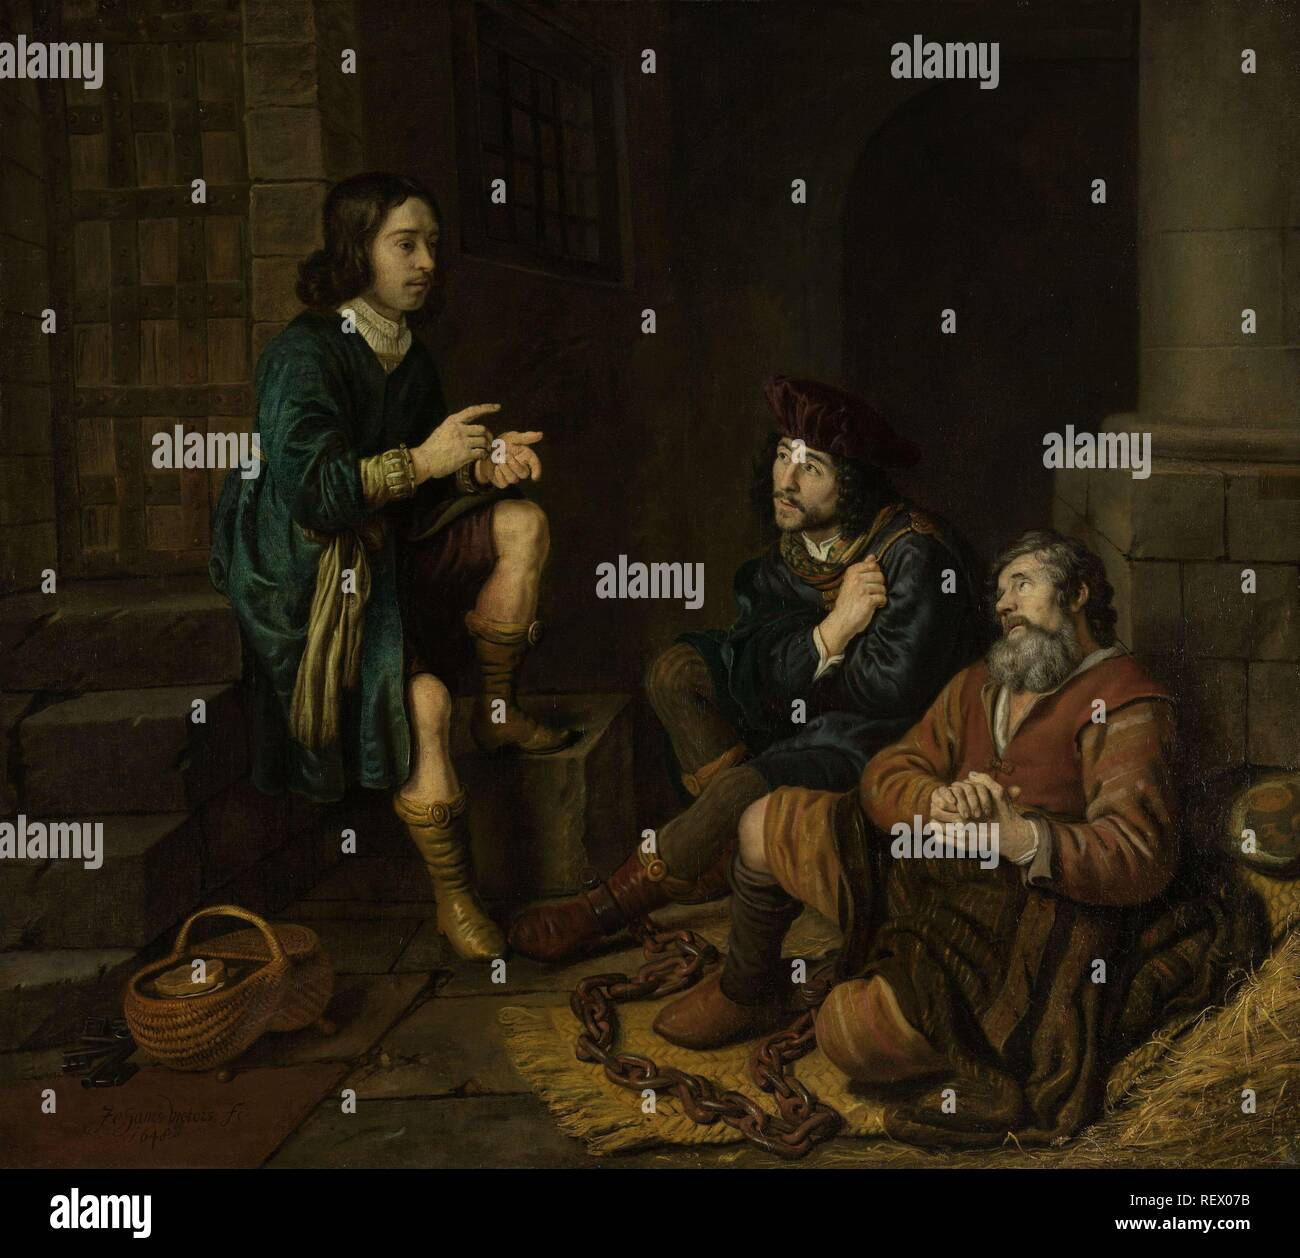 Joseph Interprets the Dreams of the Baker and the Butler. Dating: 1648. Measurements: h 120 cm × w 134 cm. Museum: Rijksmuseum, Amsterdam. Author: Jan Victors. - Stock Image